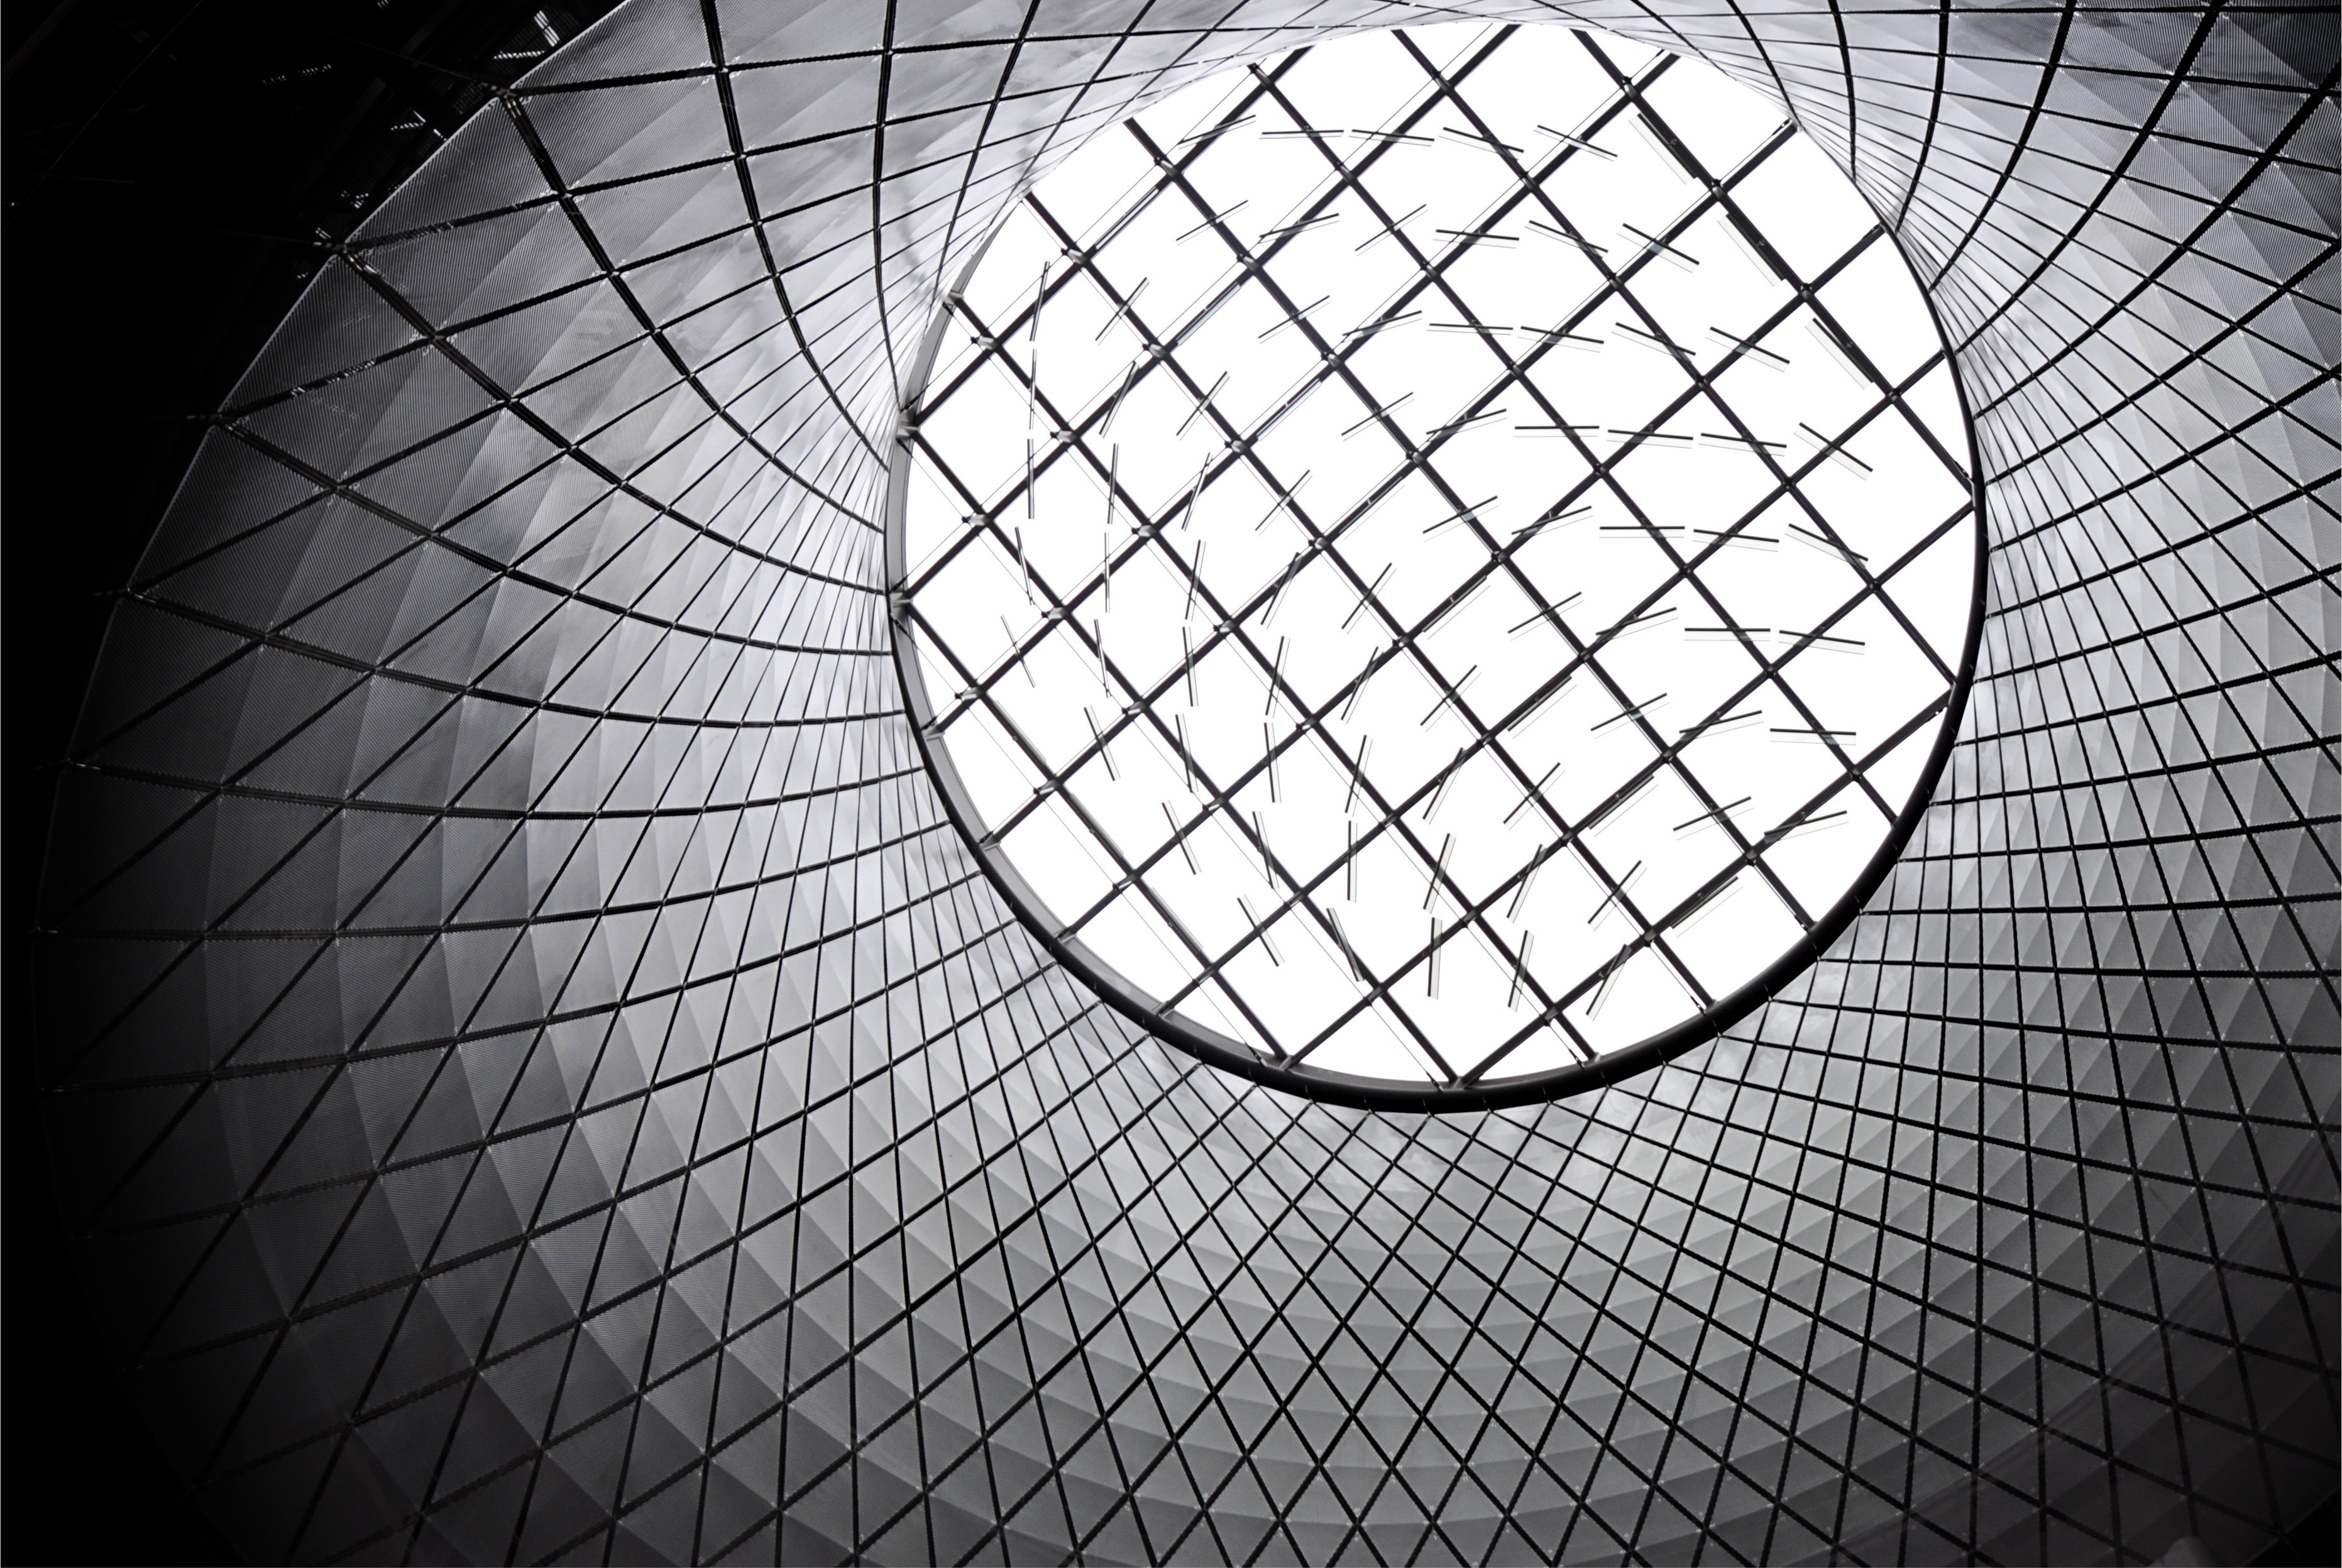 Worm's Eye of White and Black Inside Basket, Aluminium, Modern, Urban, Structure, HQ Photo